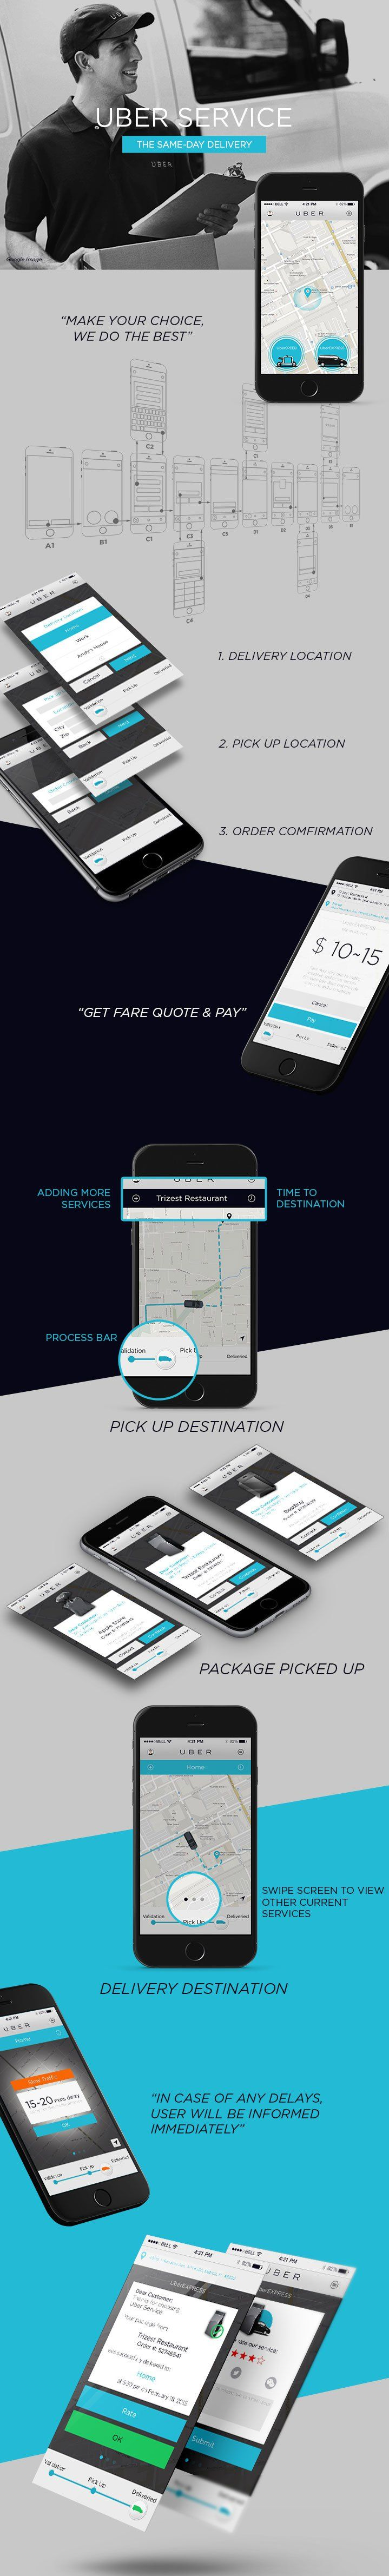 Daily Mobile UI Design Inspiration #481